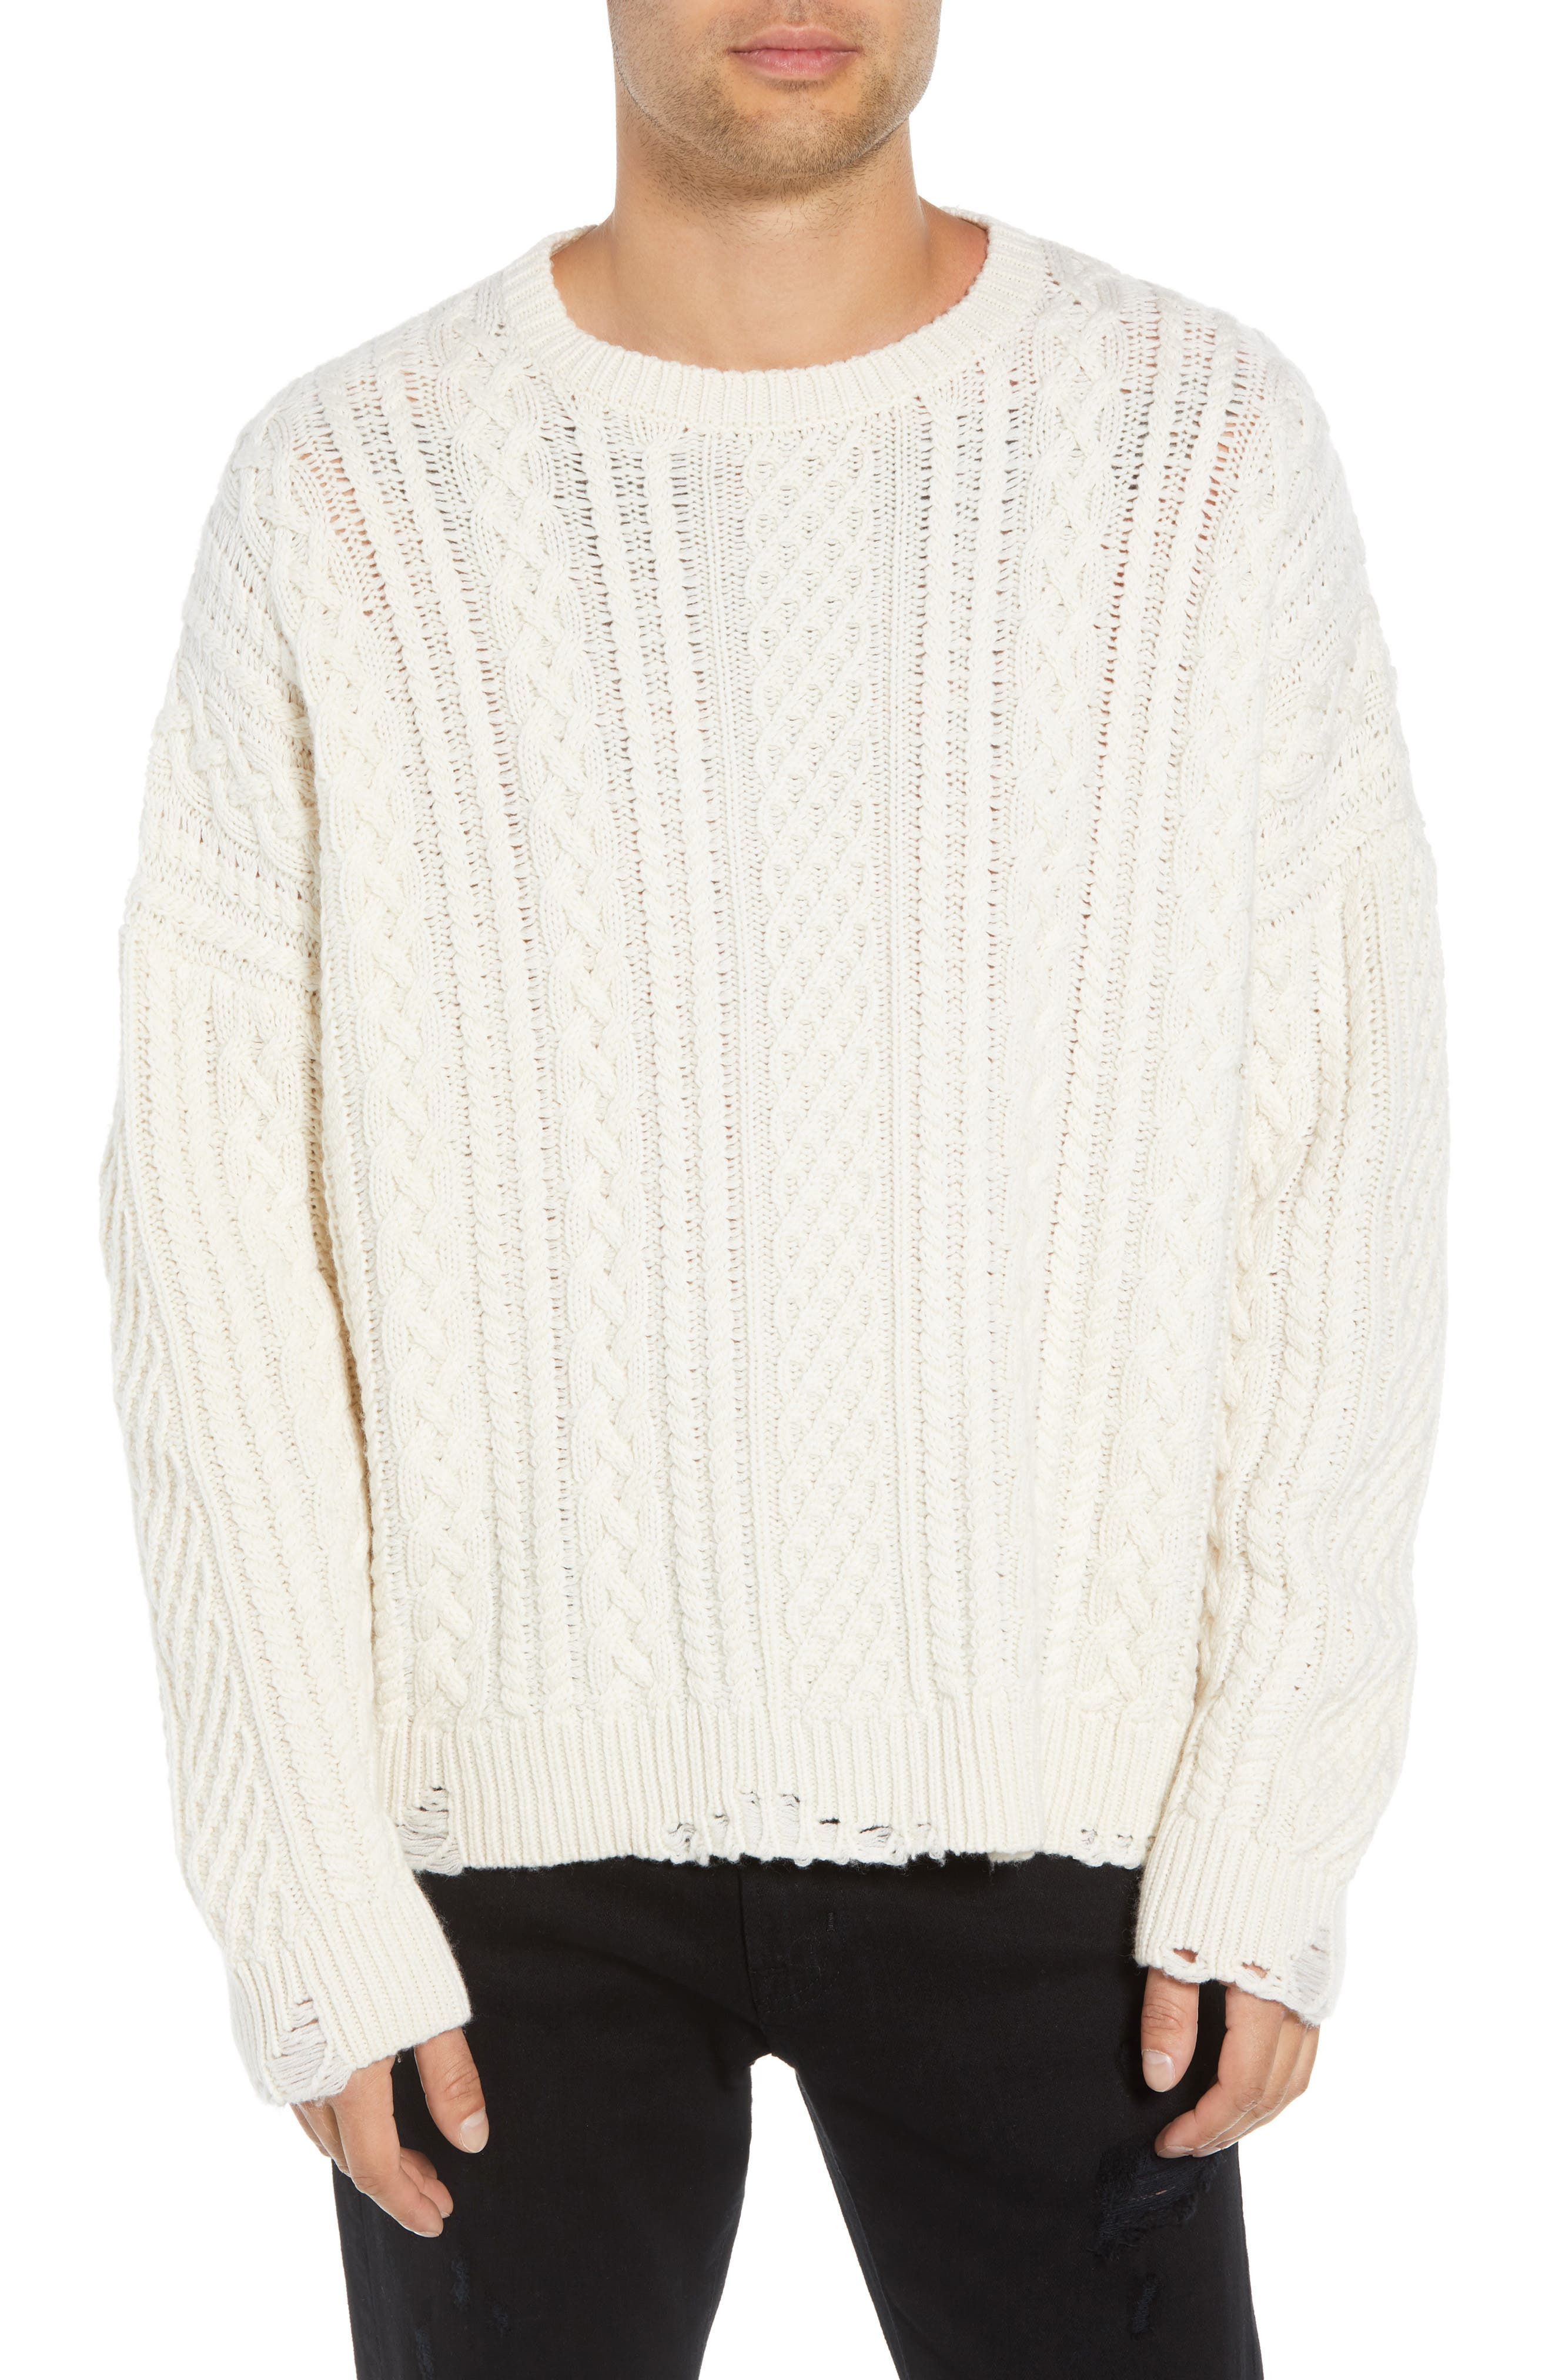 Oversize Distressed Wool Blend Sweater,                             Main thumbnail 1, color,                             BEIGE/ WHITE